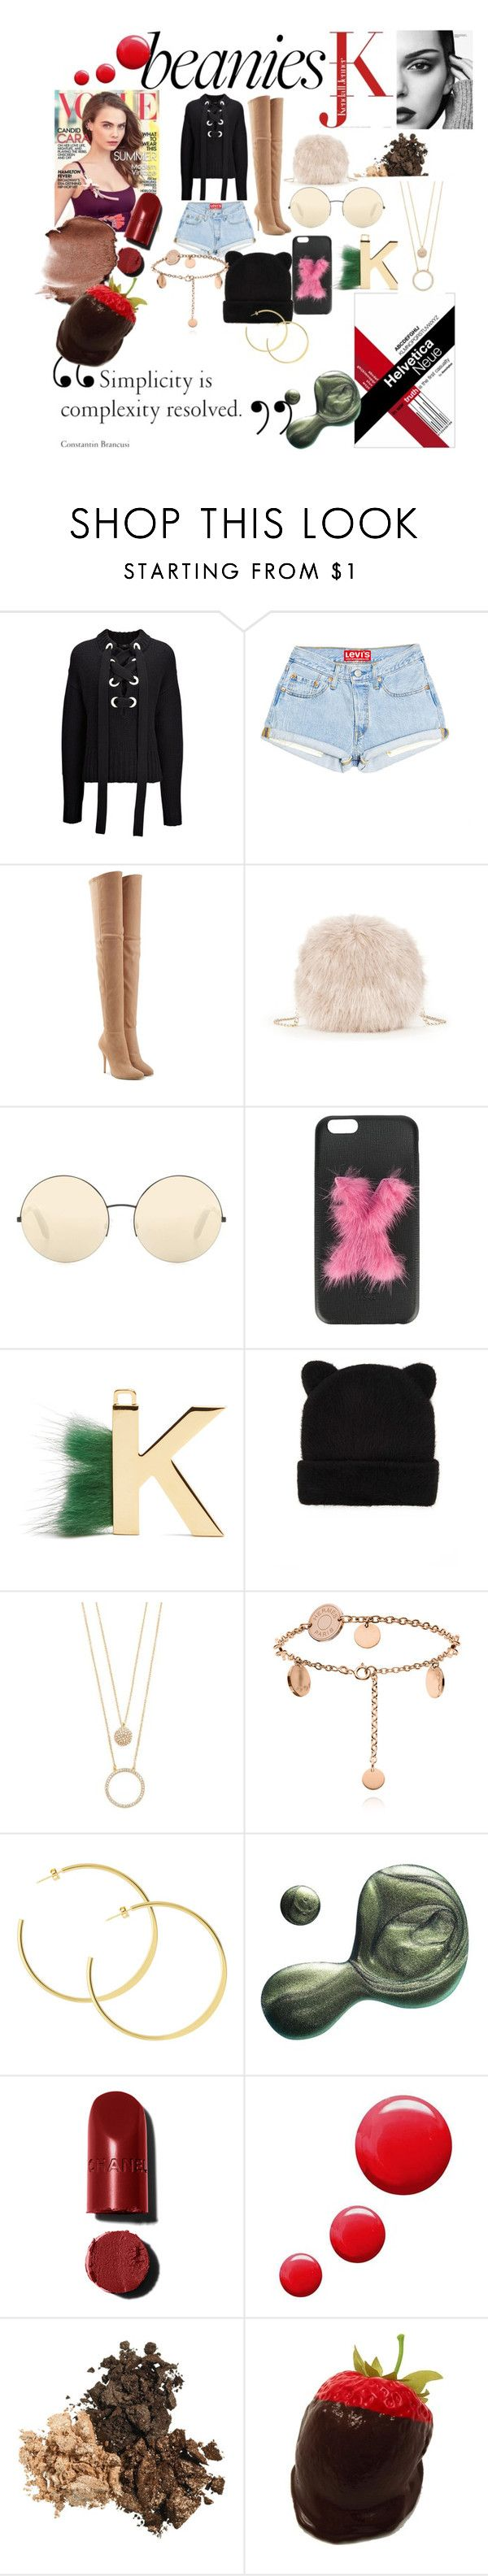 """Untitled #24"" by charisma-natalie-putri-kemalsyach ❤ liked on Polyvore featuring Joseph, Balmain, Sole Society, Victoria Beckham, Fendi, Forever 21, Kate Spade, Illamasqua and Topshop"